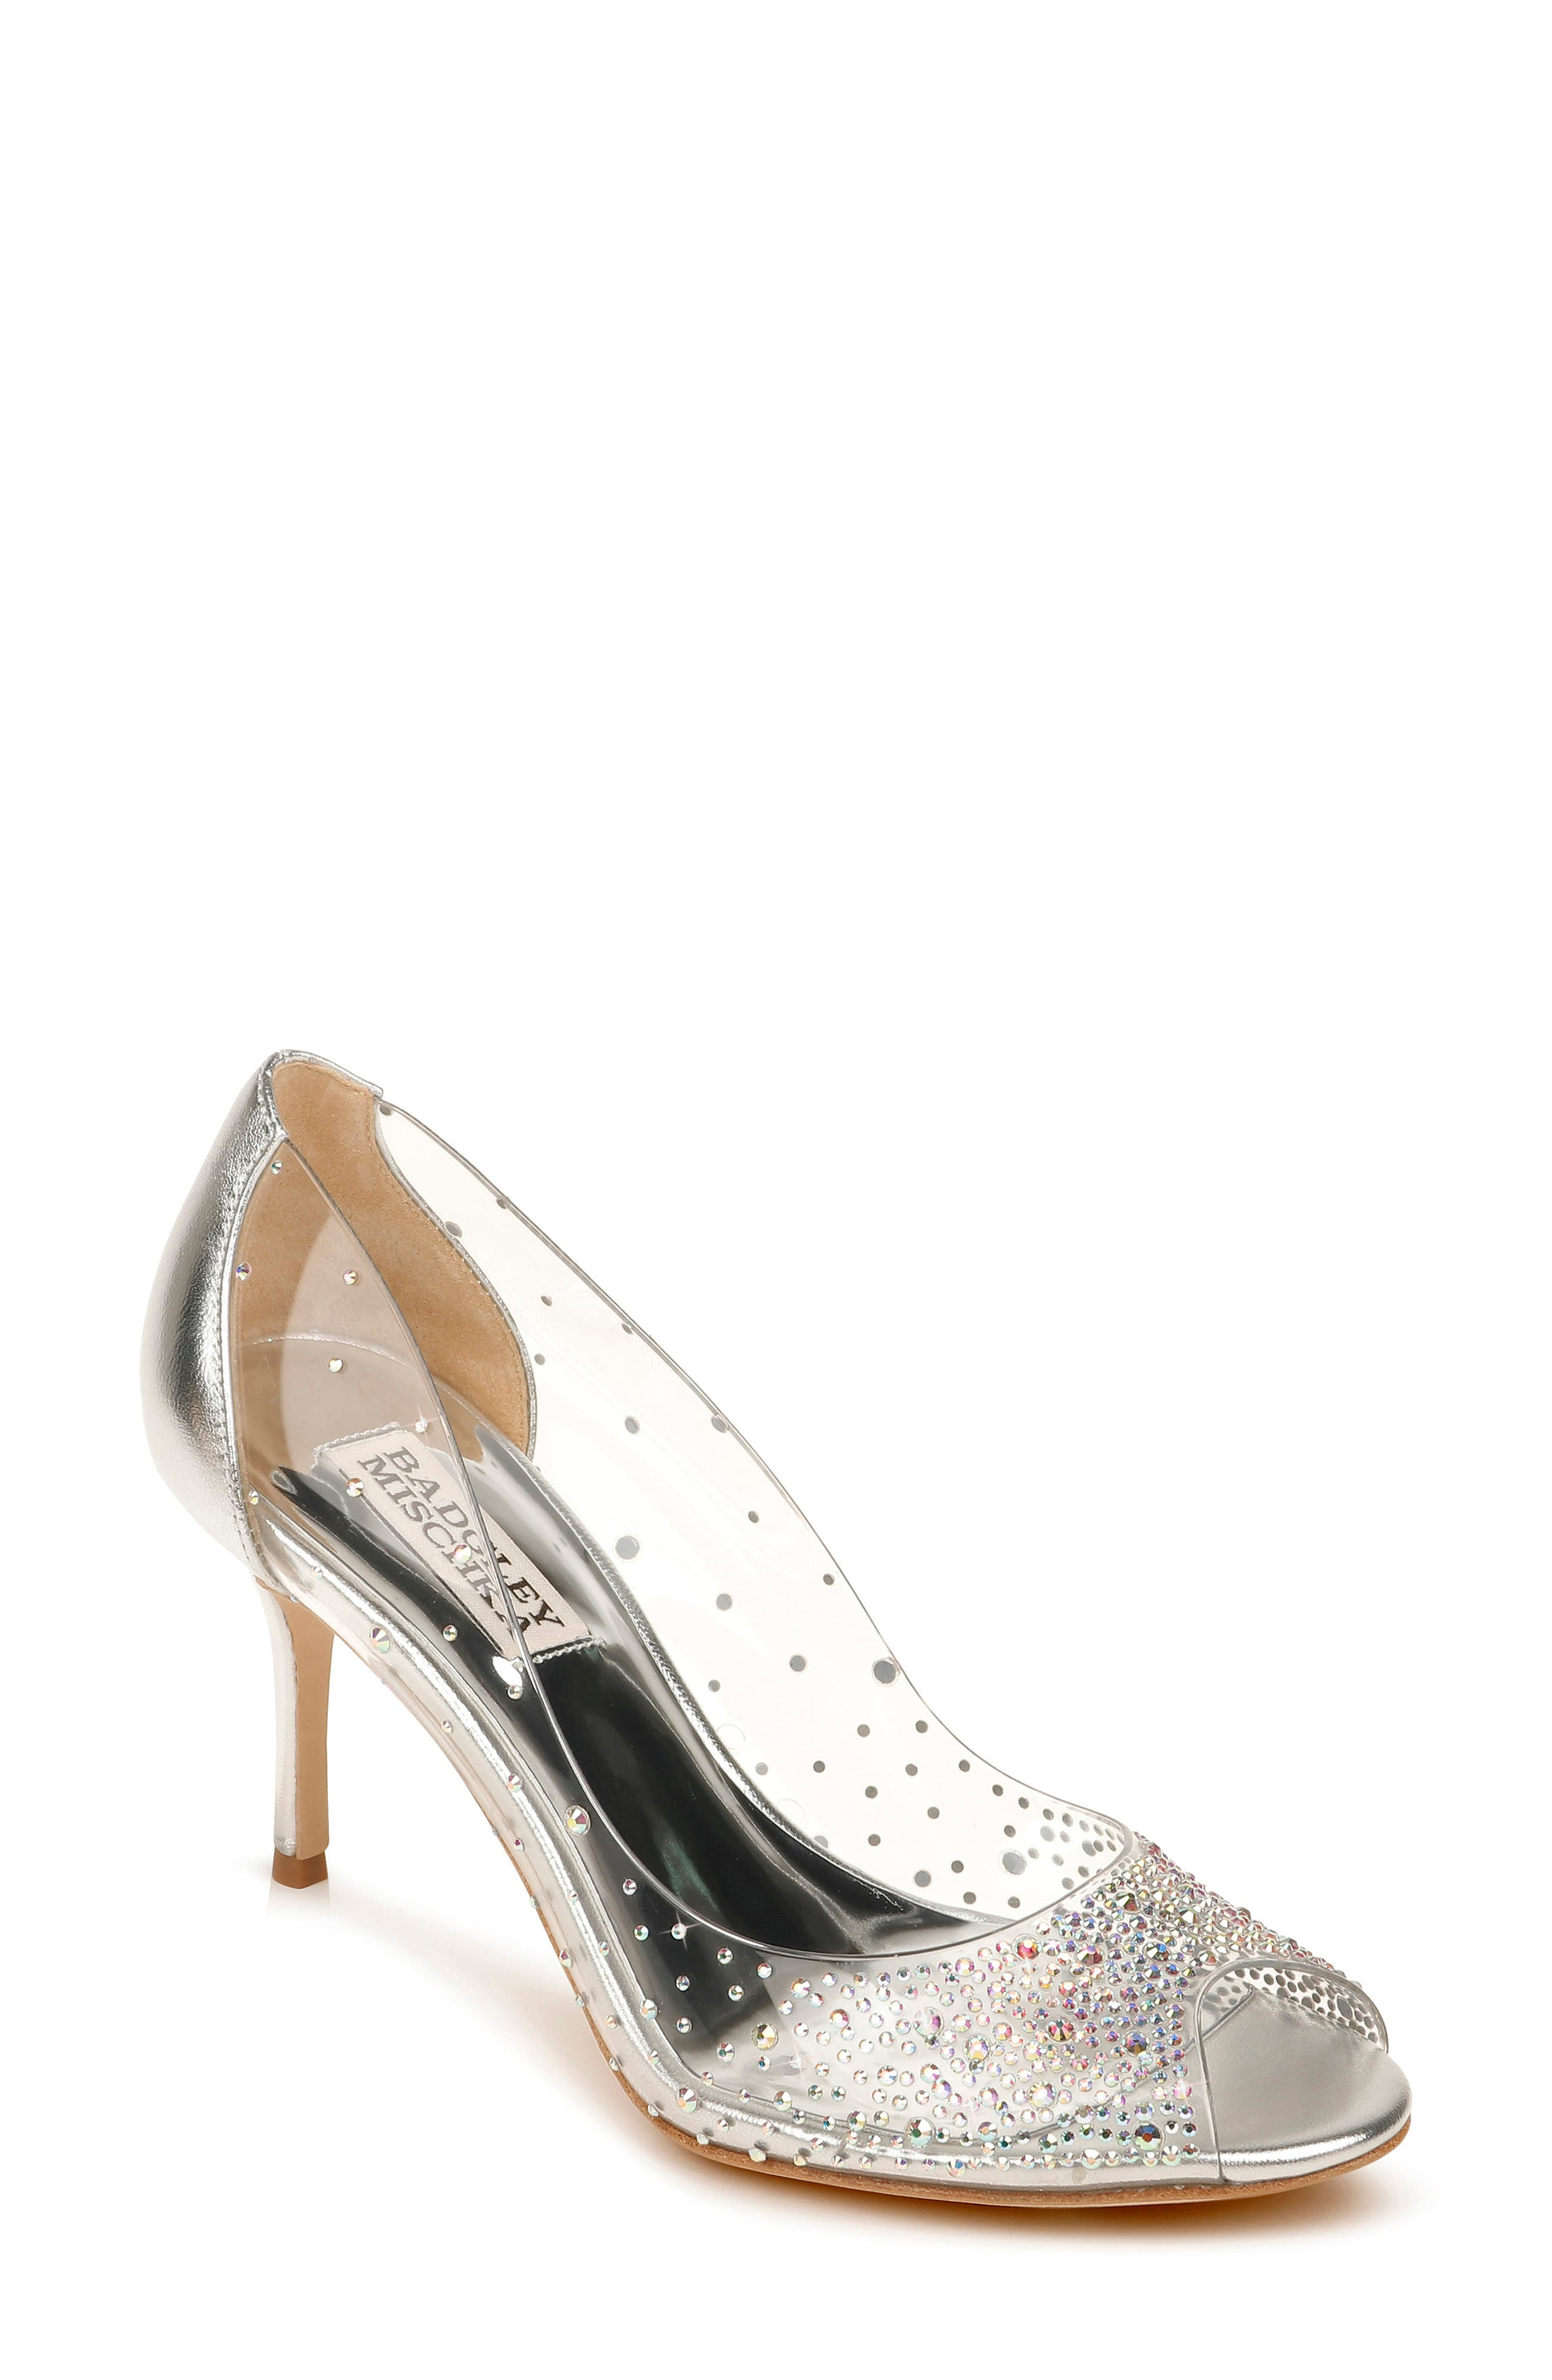 Sparkling crystals embellish the translucent sides of a glamorous peep-toe pump lifted by a classic tapered heel. Style Name: Badgley Mischka Ginata Embellished Peep Toe Pump (Women). Style Number: 6036684. Available in stores.